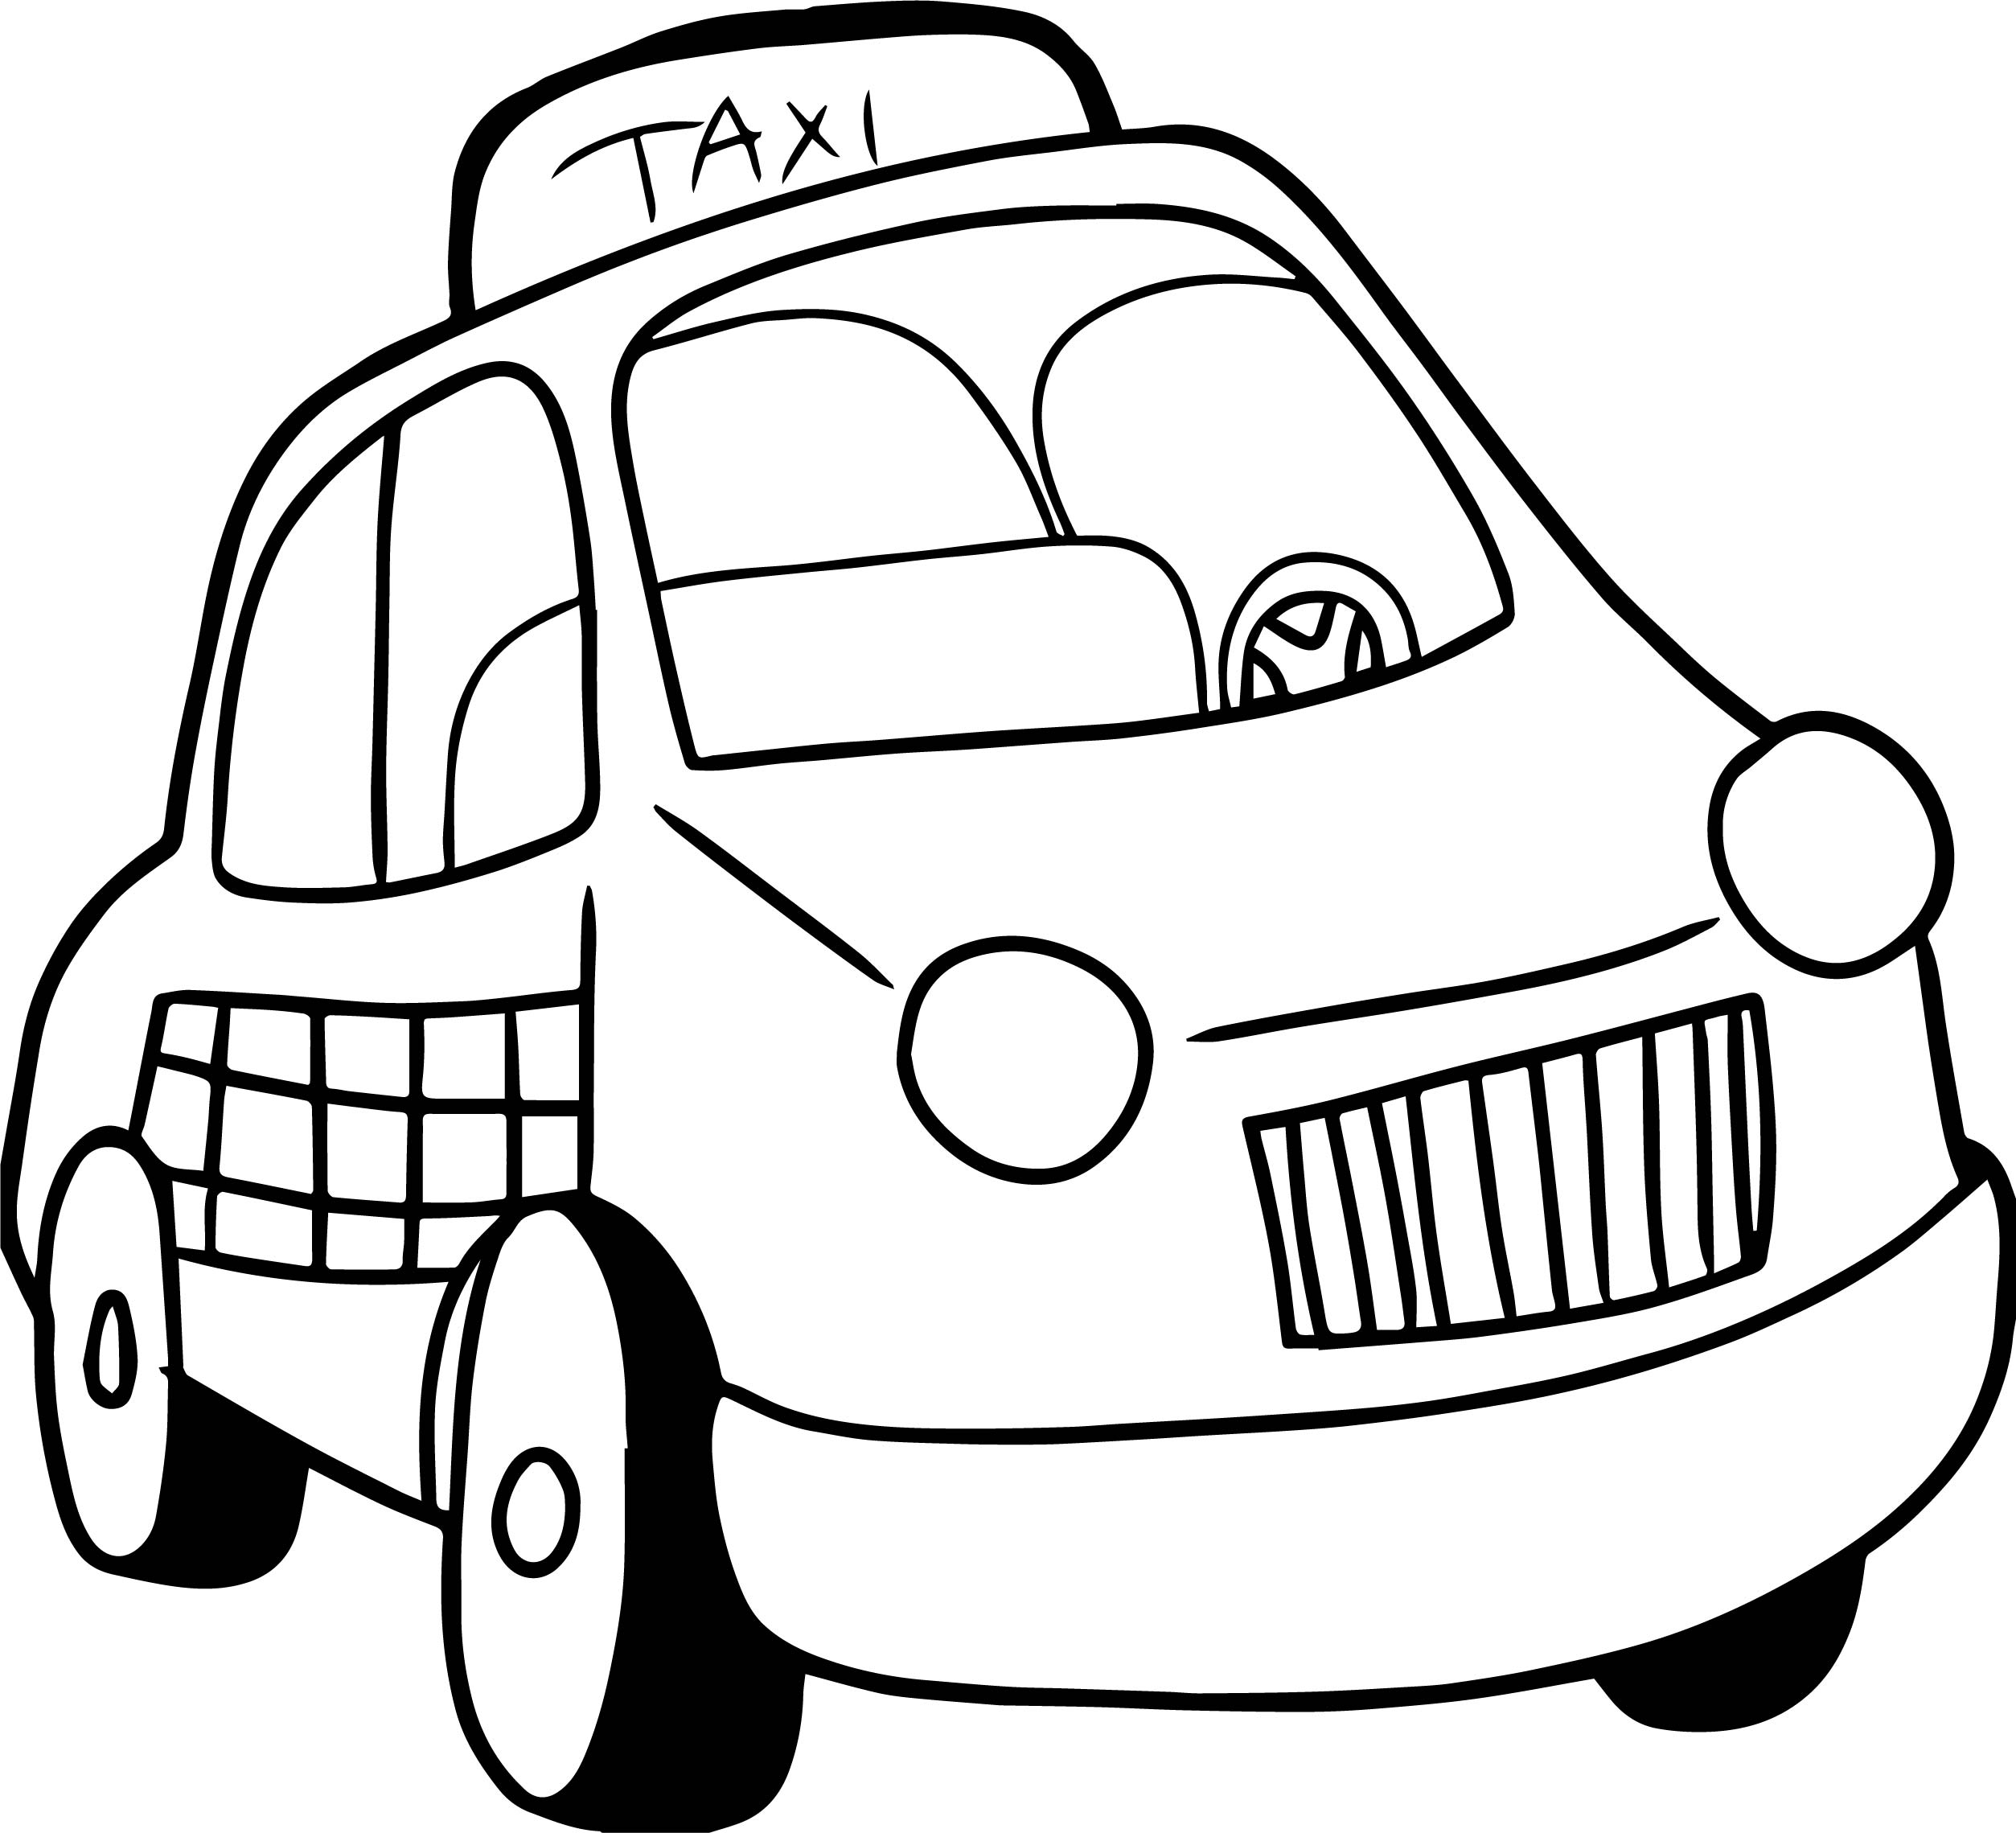 Taxi driver car cartoon coloring page for Taxi coloring page